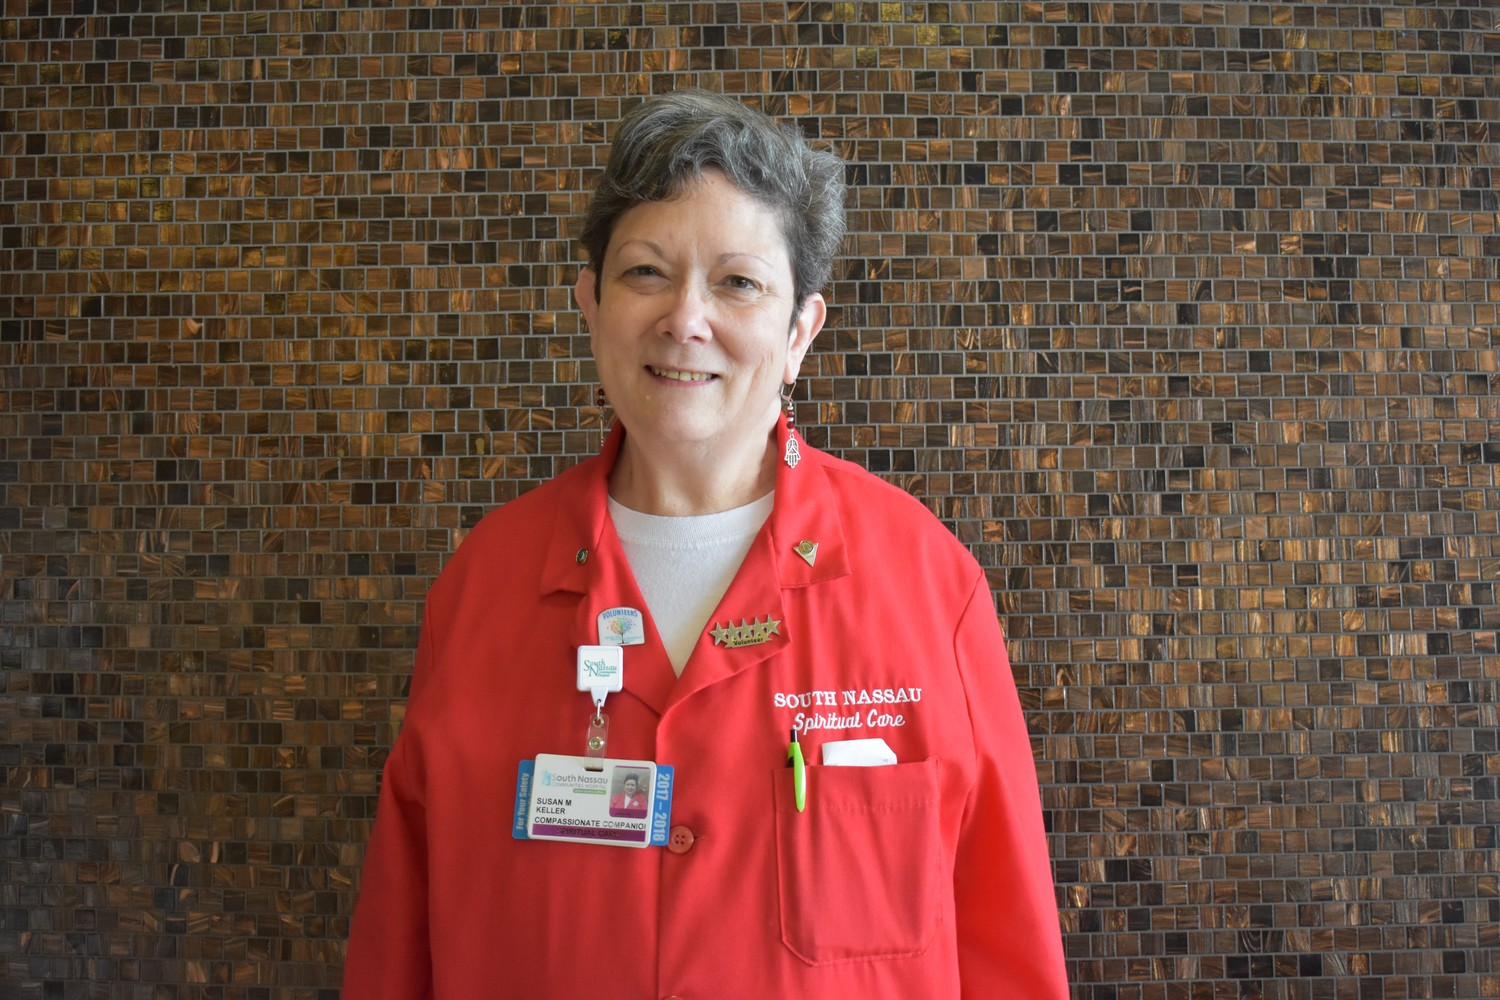 Sue Keller has volunteered at South Nassau Communities Hospital since 1998, currently serving as a compassionate companion.